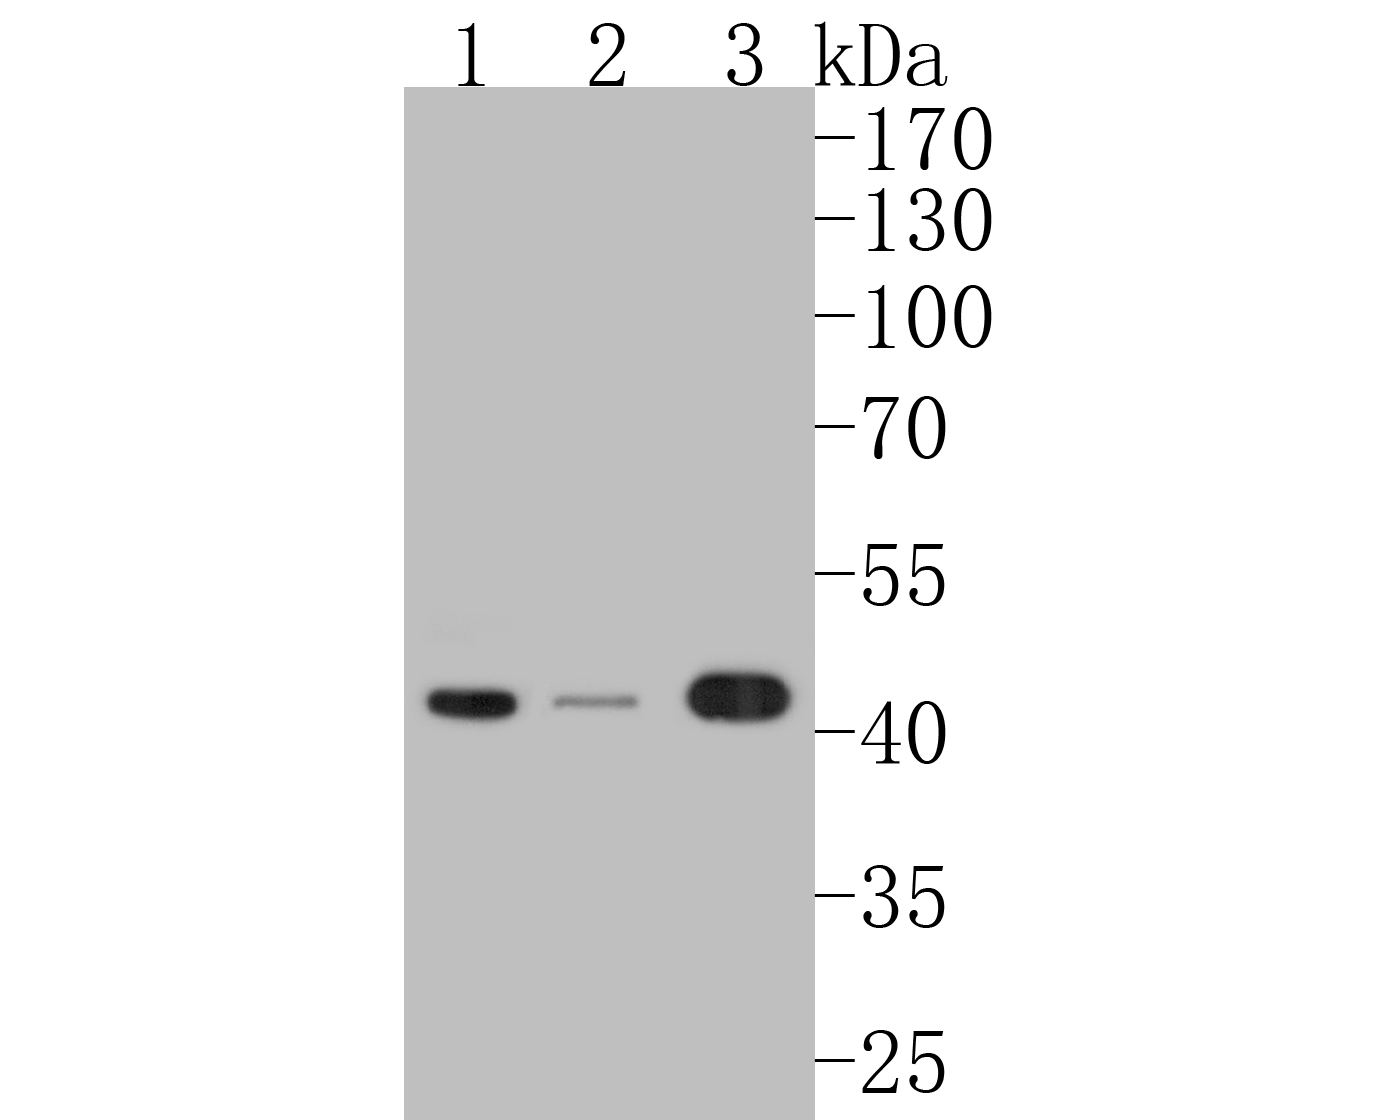 Western blot analysis of Phospho-MEK1(S218/S222) on different lysates. Proteins were transferred to a PVDF membrane and blocked with 5% BSA in PBS for 1 hour at room temperature. The primary antibody (ET1609-50, 1/500) was used in 5% BSA at room temperature for 2 hours. Goat Anti-Rabbit IgG - HRP Secondary Antibody (HA1001) at 1:5,000 dilution was used for 1 hour at room temperature.<br />  Positive control: <br />  Lane 1: Hela cell lysate<br />  Lane 2: A431 cell lysate<br />  Lane 2: 293T cell lysate